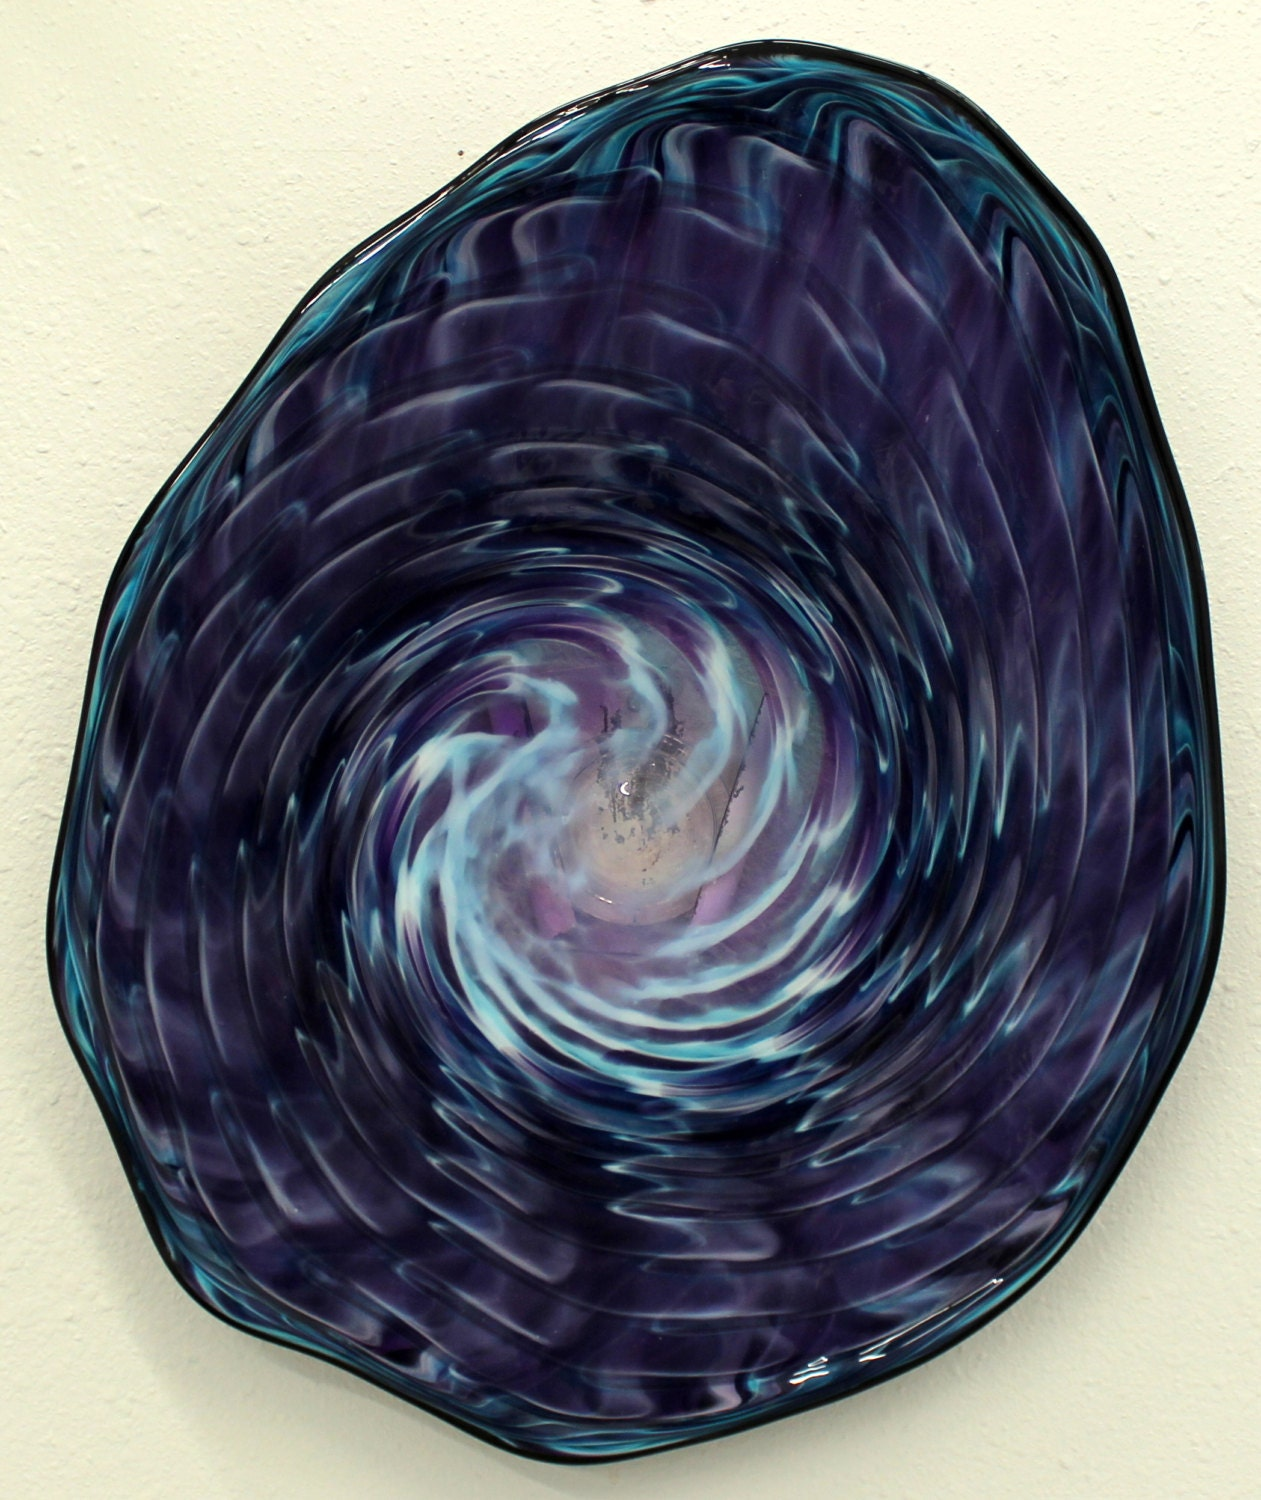 Glass Blowing Wall Decor : Beautiful hand blown glass art patterned wall by oneilsarts